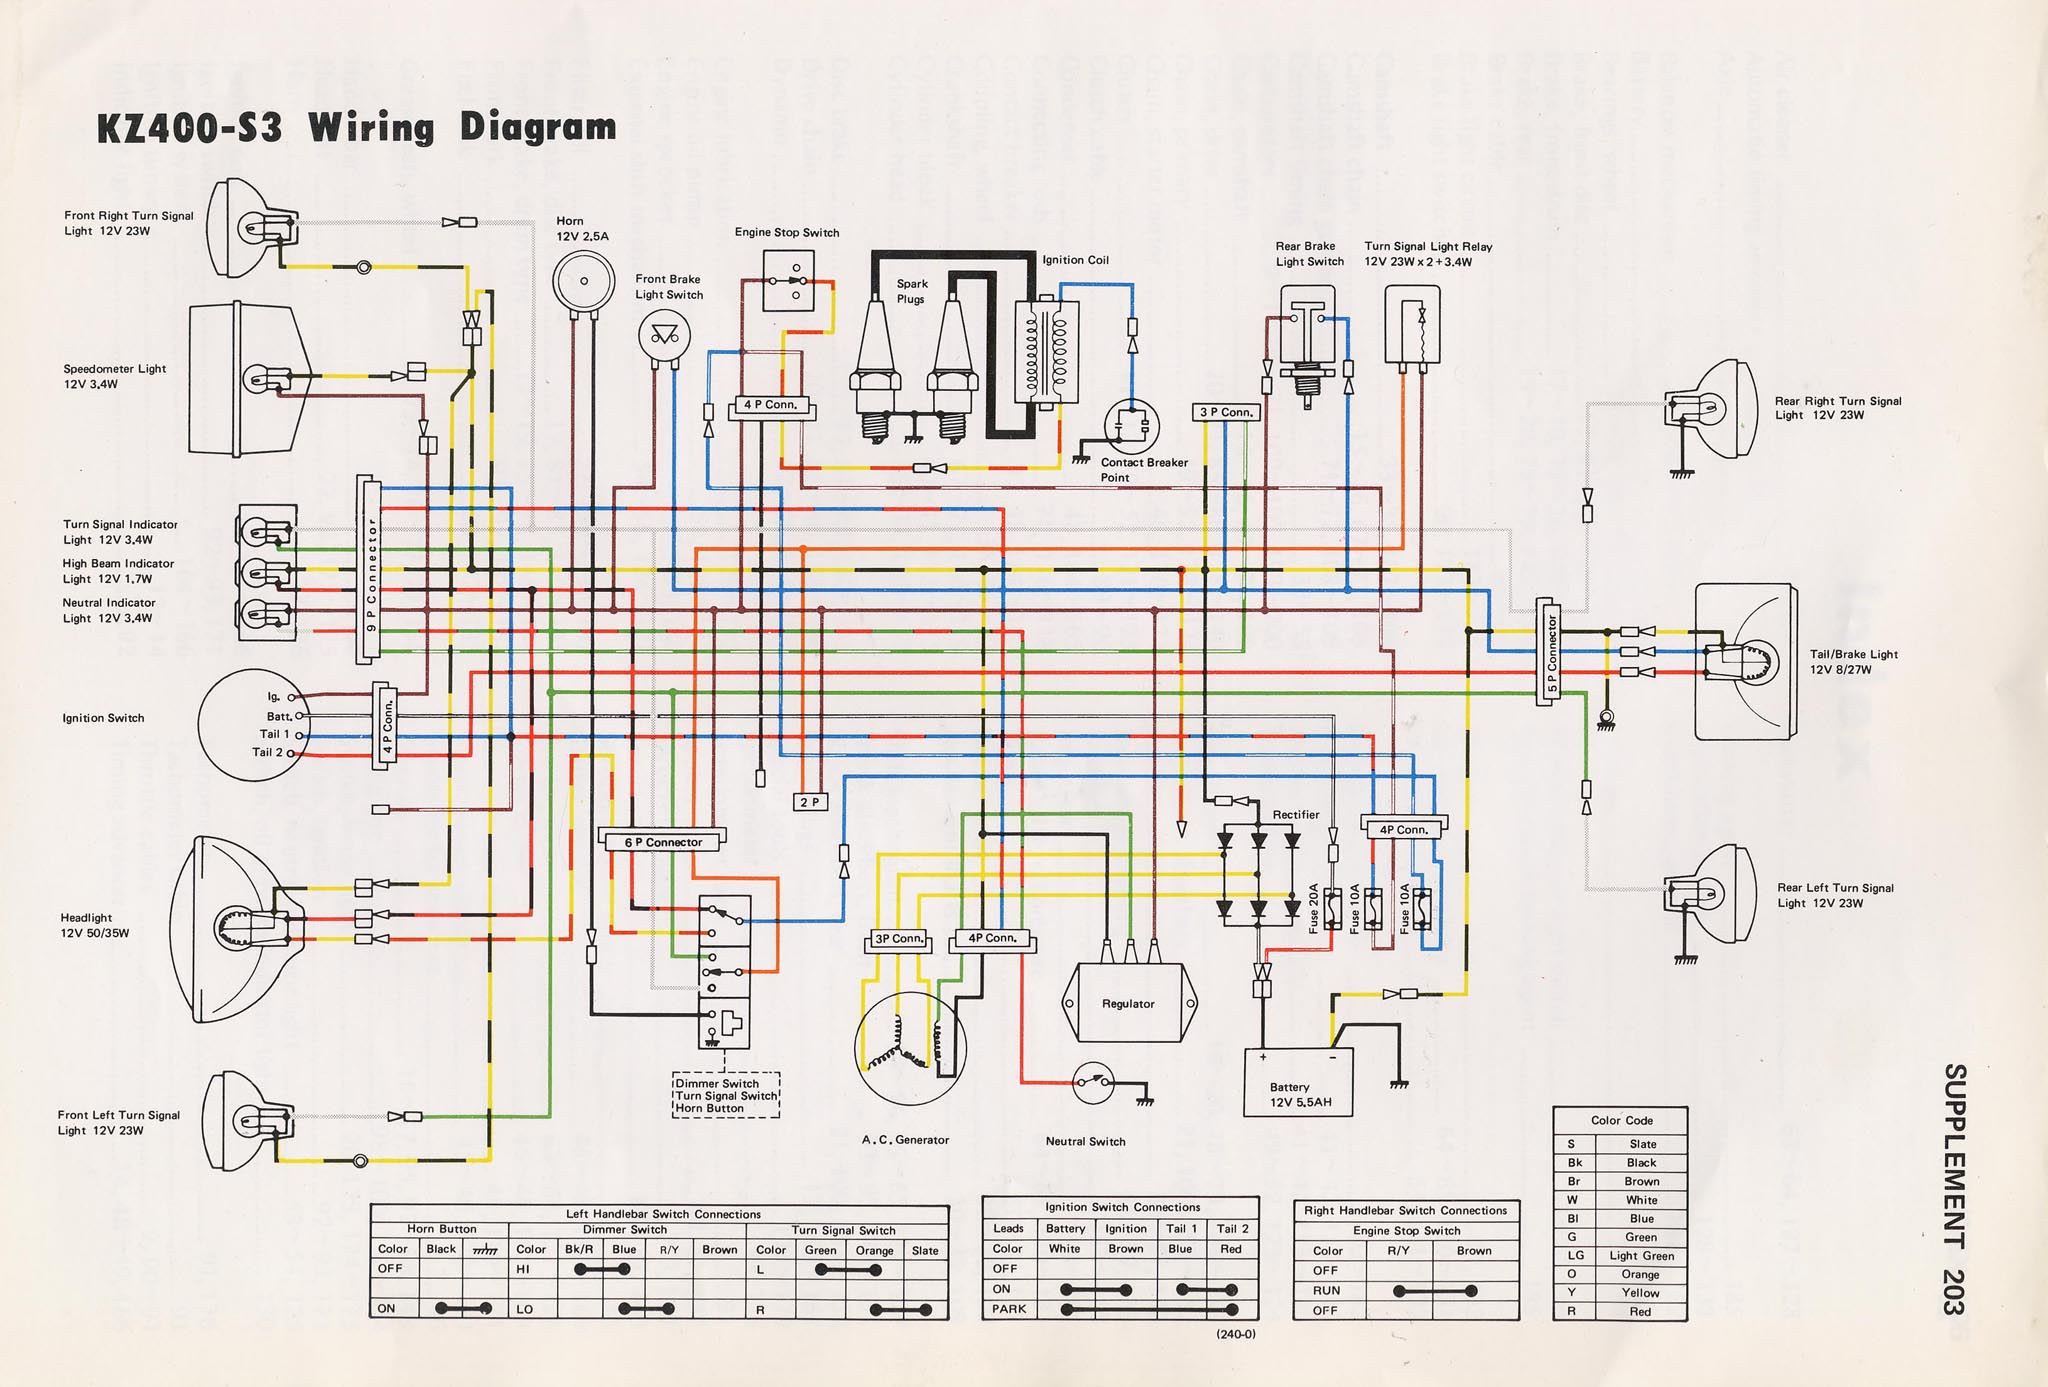 76 Kz400 Wiring Diagram Schematic Diagrams Ex250 1976 Explore U2022